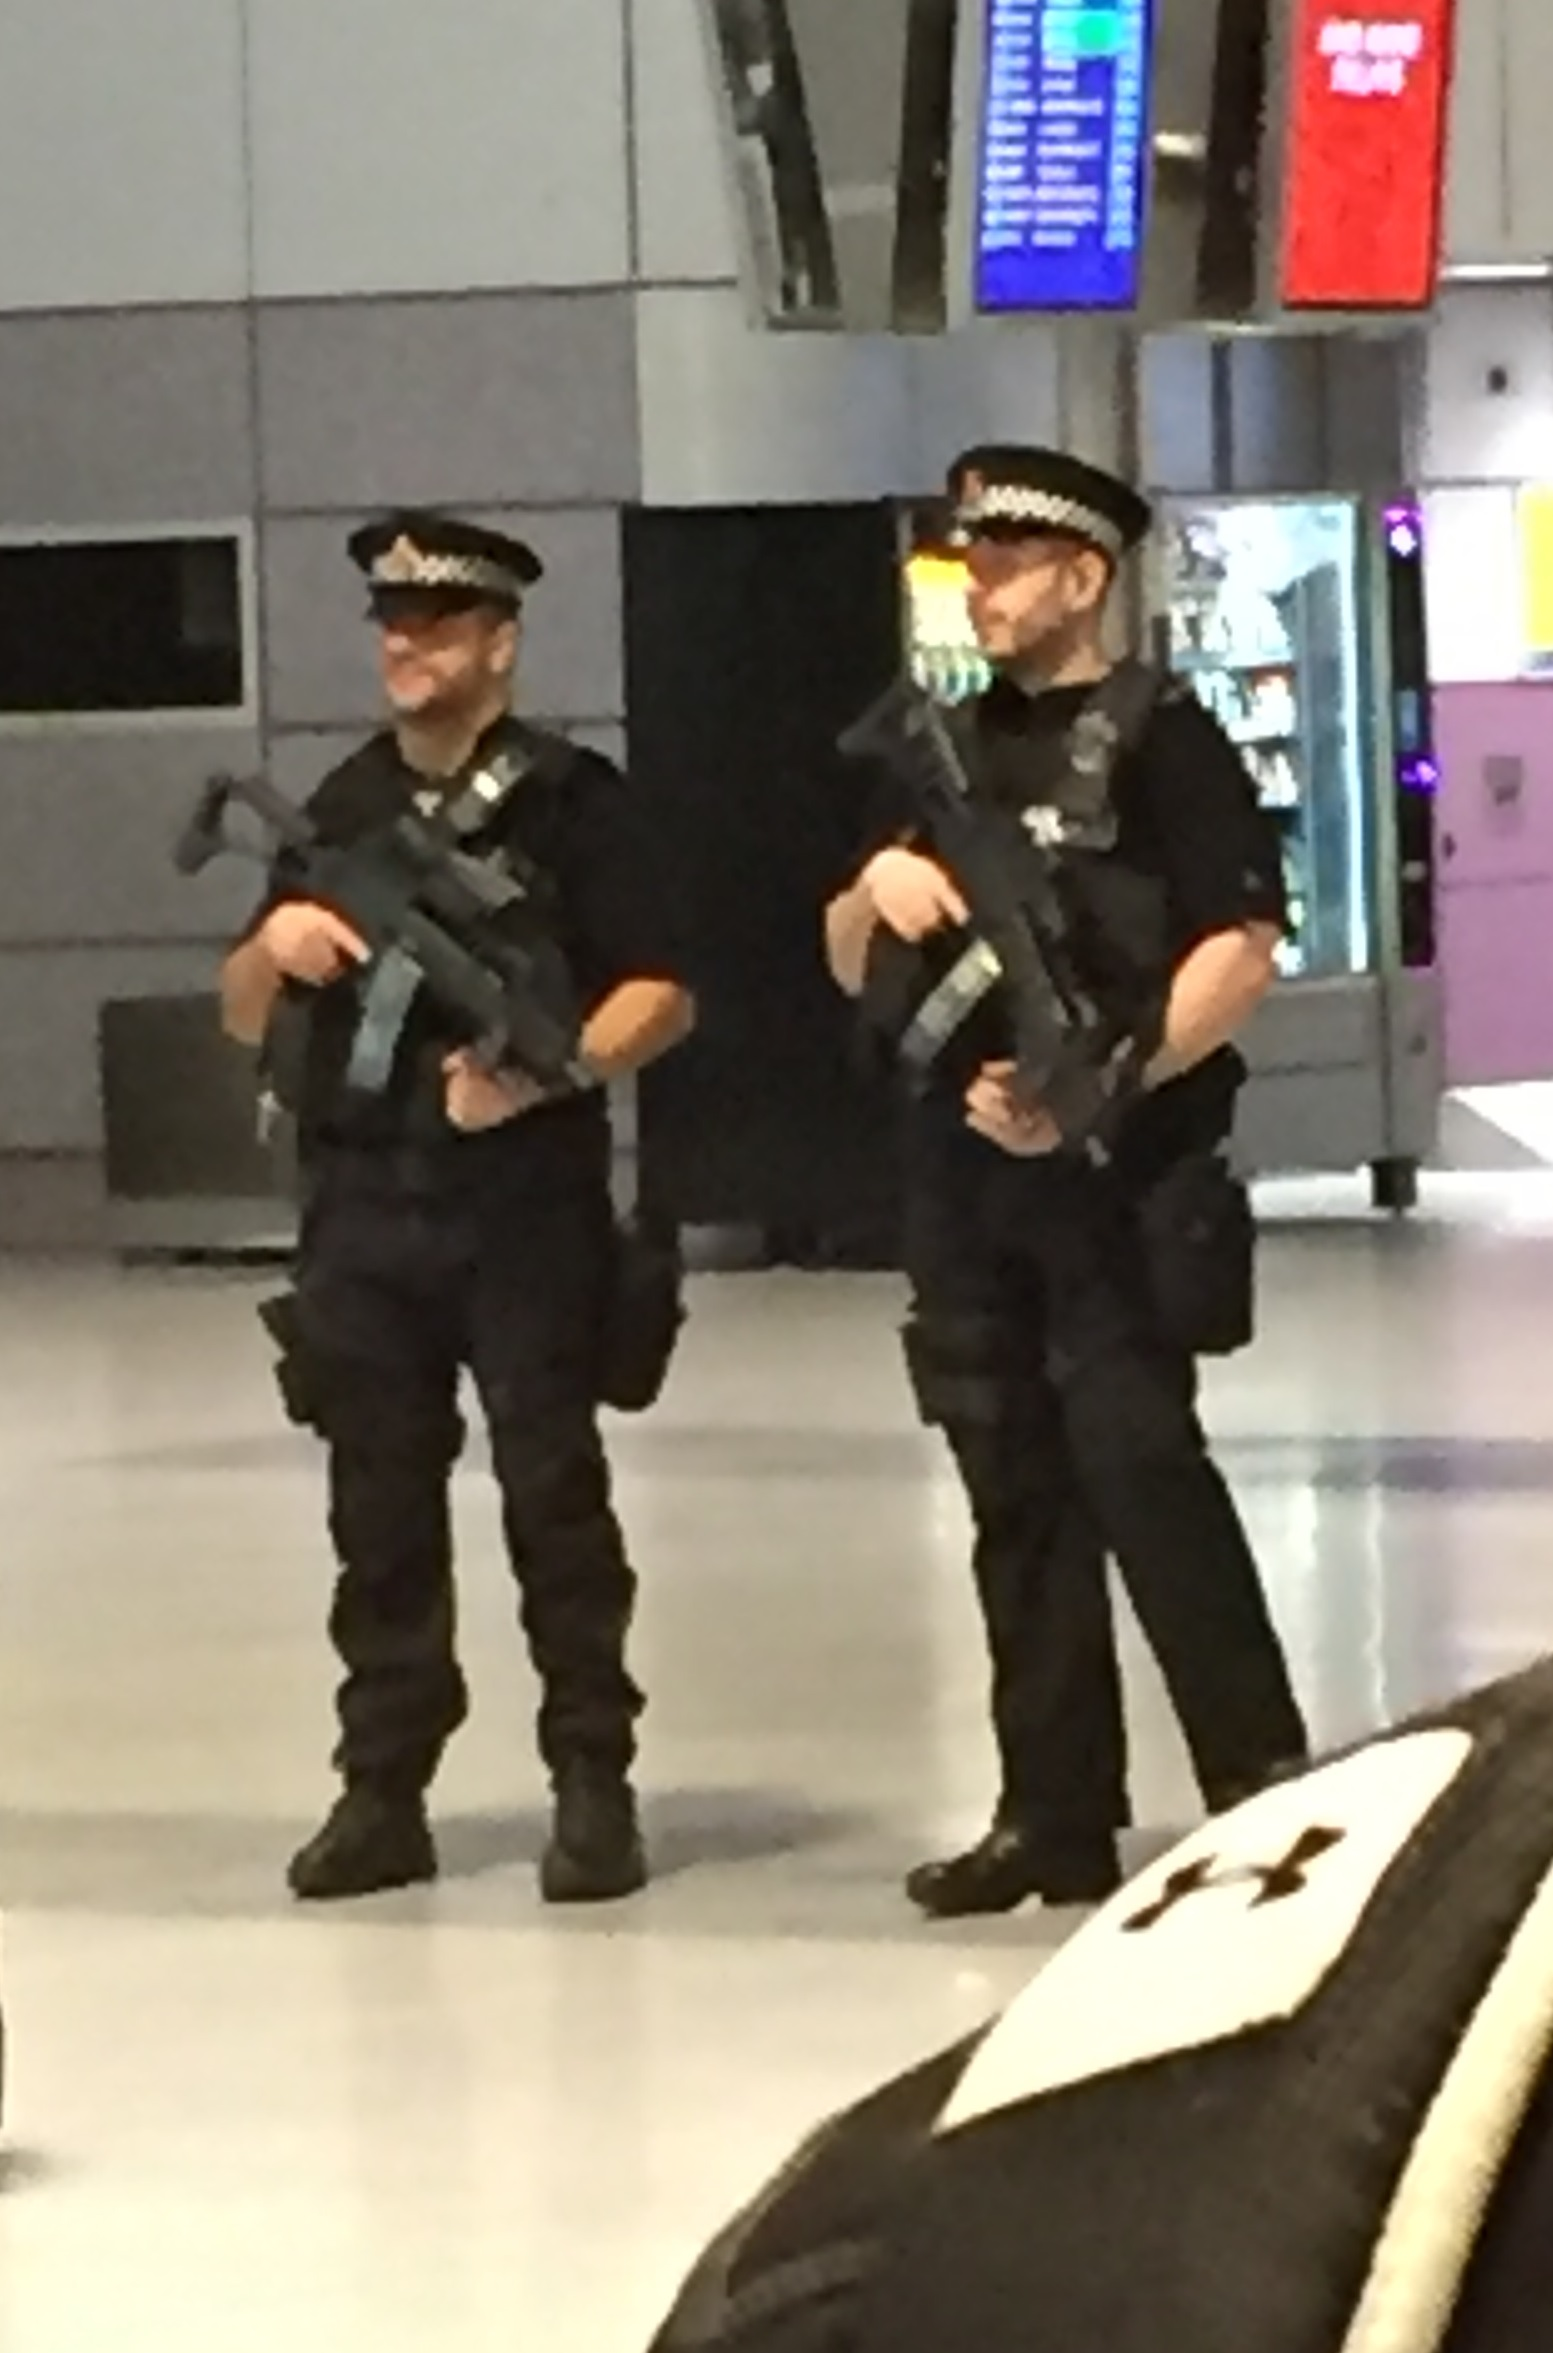 More pics from London (updated again)-g36_gb.jpg